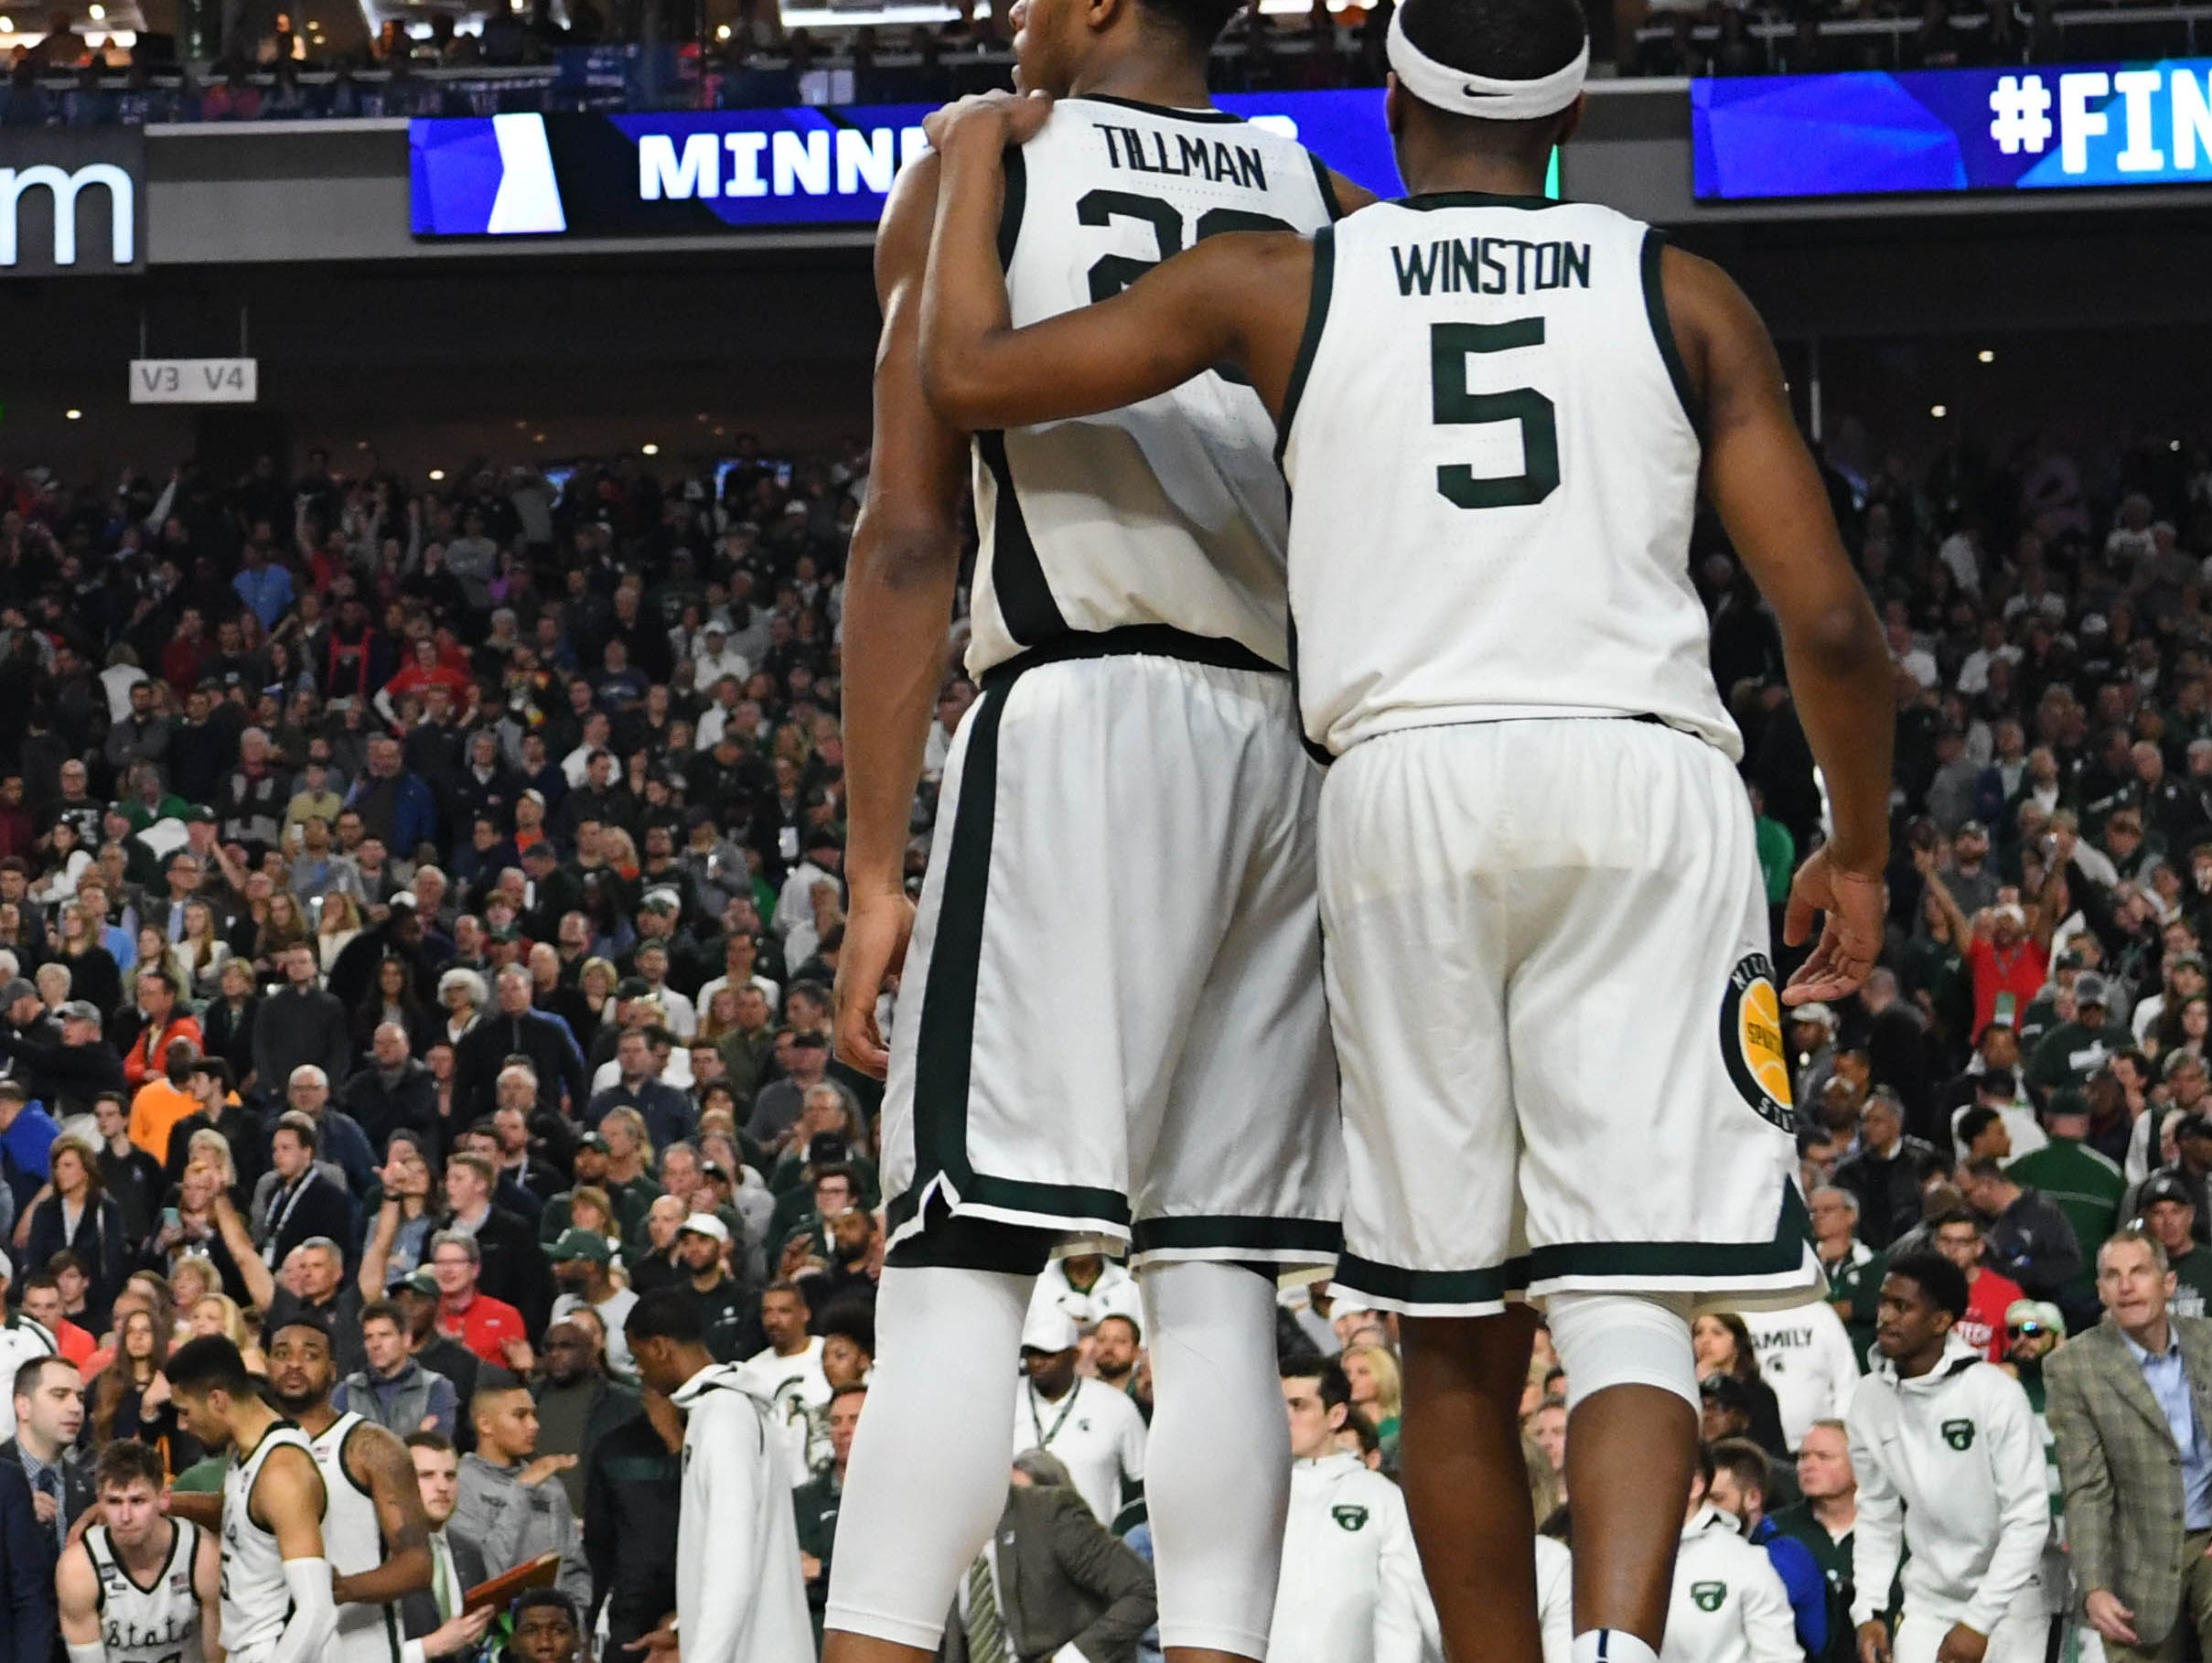 Final Four: No. 2 Michigan State loses to No. 3 Texas Tech, 61-51.